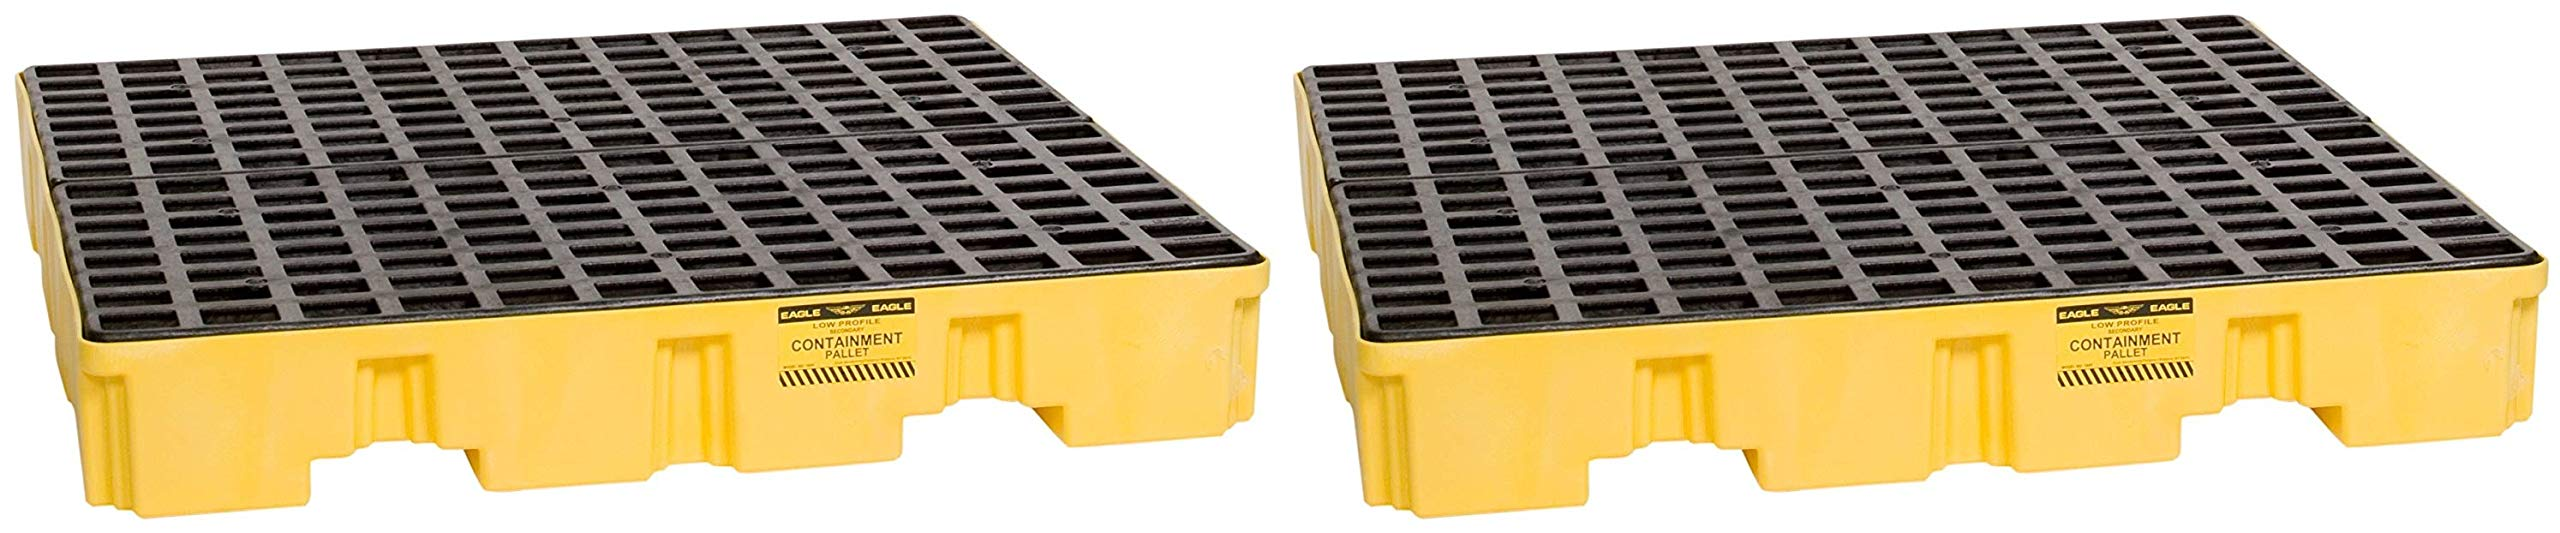 Eagle 1645 Yellow and Black Polyethylene 4 Drum Low Profile Spill Containment Pallet with Flat Top Grating, 8000 lbs Load Capacity, 51.5'' Length, 51.5'' Width, 8'' Height (Pack of 2)